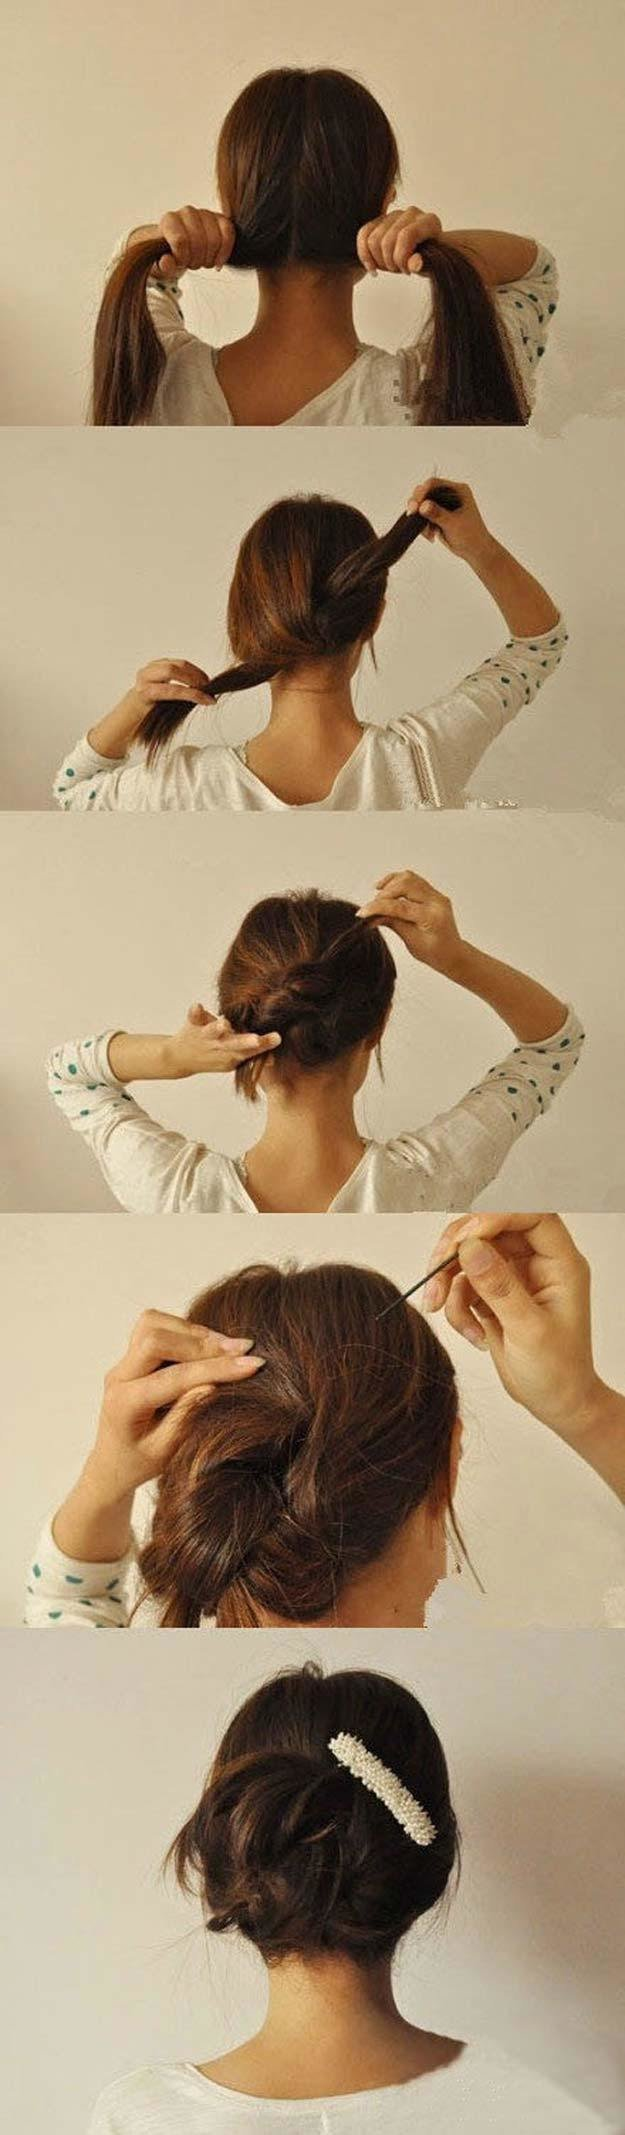 The Best 36 Best Hairstyles For Long Hair Diy Projects For Teens Pictures